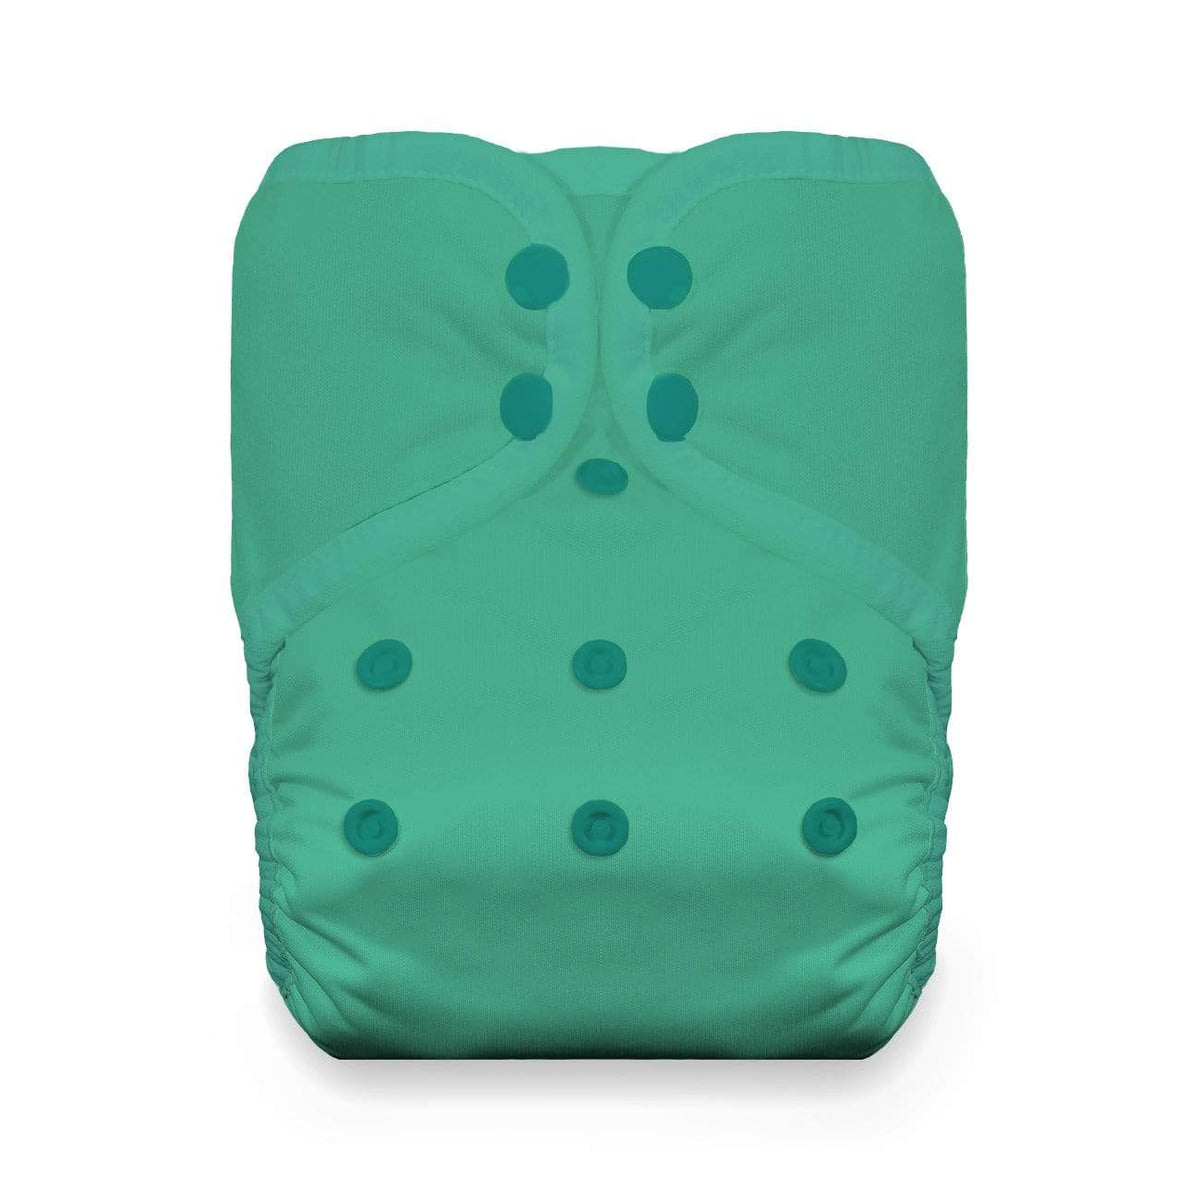 Thirsties Natural One Size Snap Pocket Diaper - Seafoam